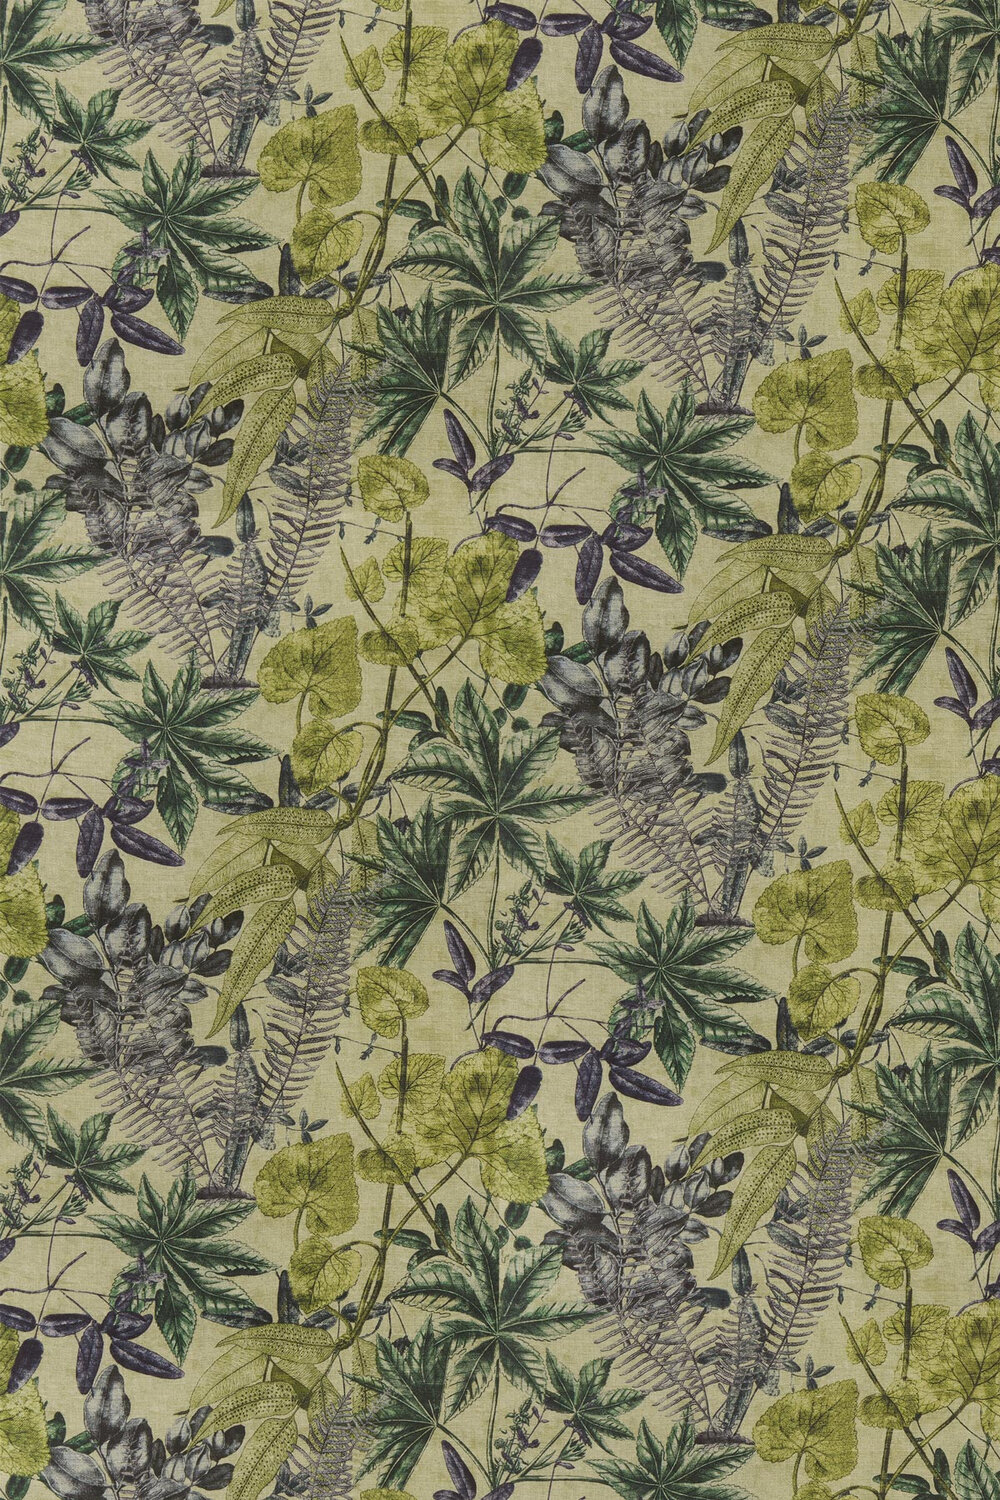 Madagascar Forest Fabric - Chartreuse / Jungle Green - by Clarke & Clarke